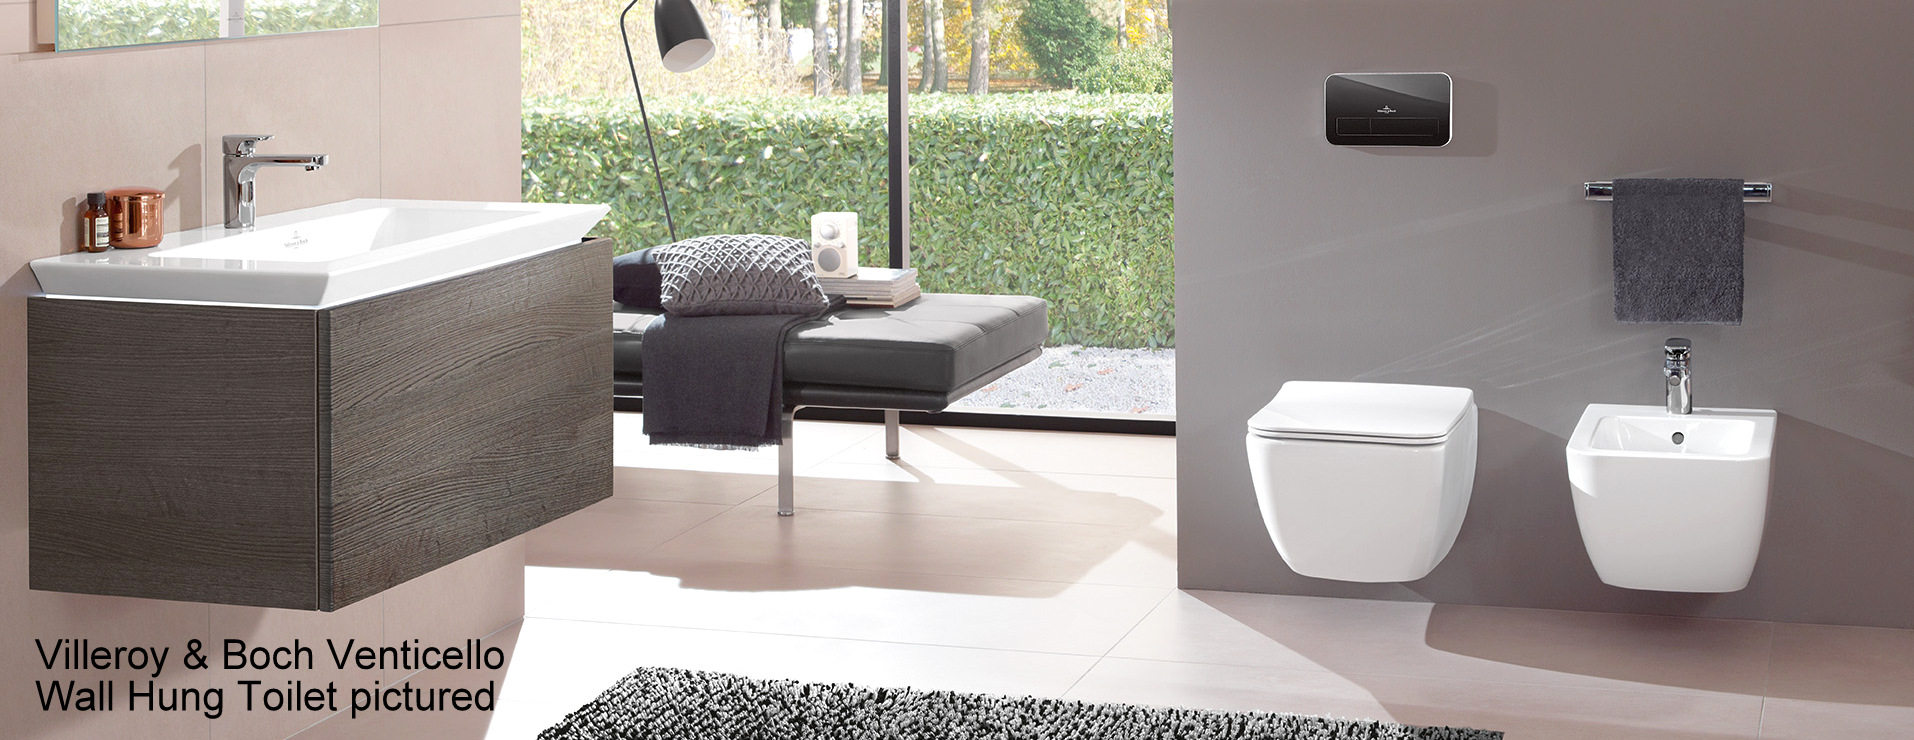 Villeroy and Boch Venticello Rimless Toilet